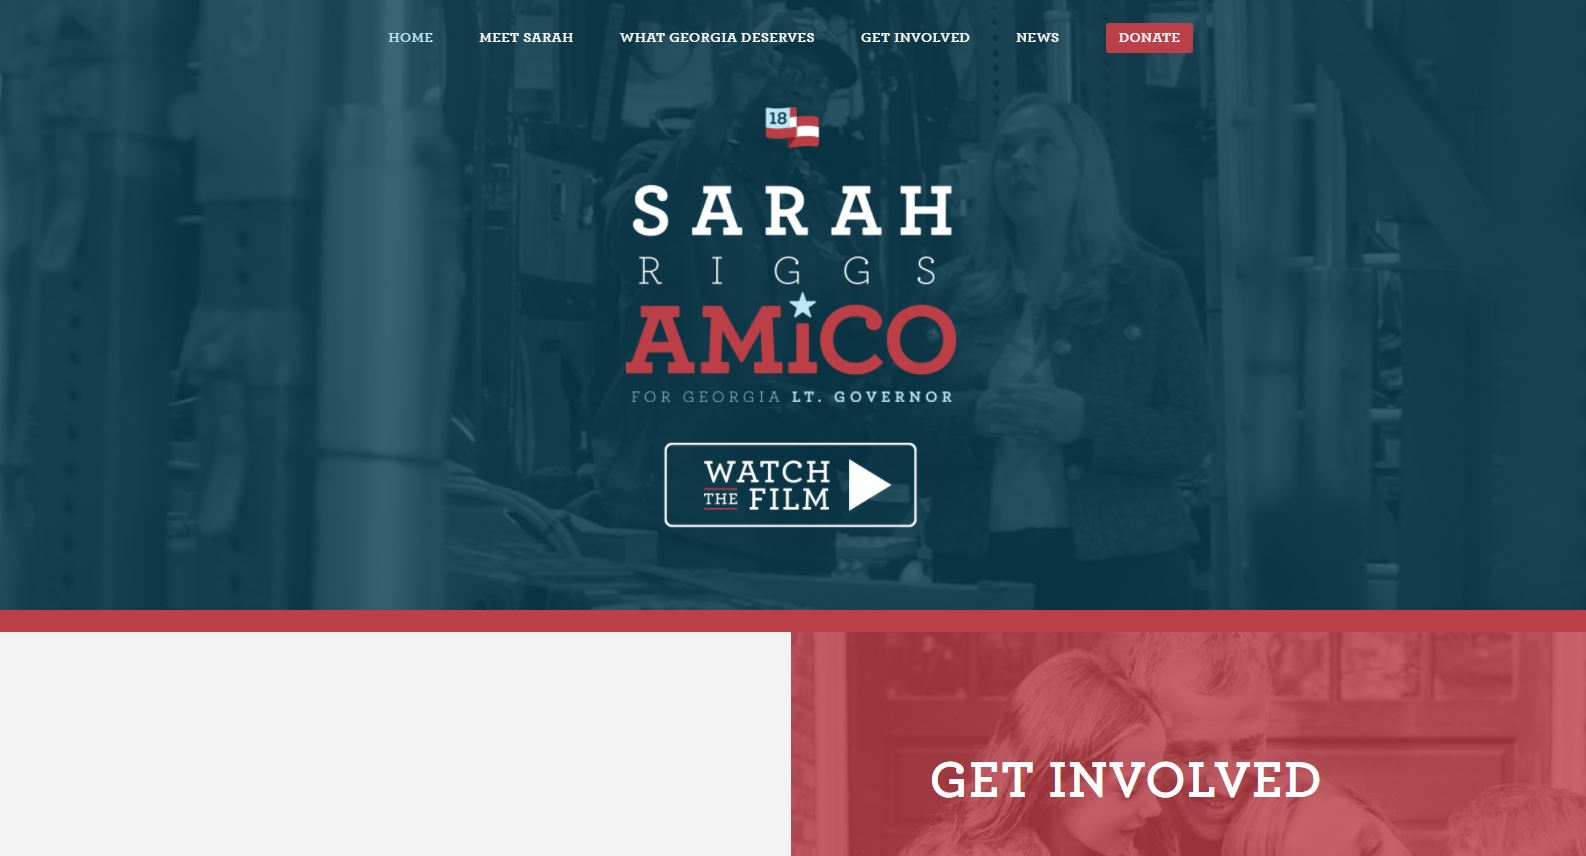 A portion of Sarah Riggs Amico's campaign website. The executive chairwoman of a major auto hauling company, she recently announced plans to run for lieutenant governor in Georgia.